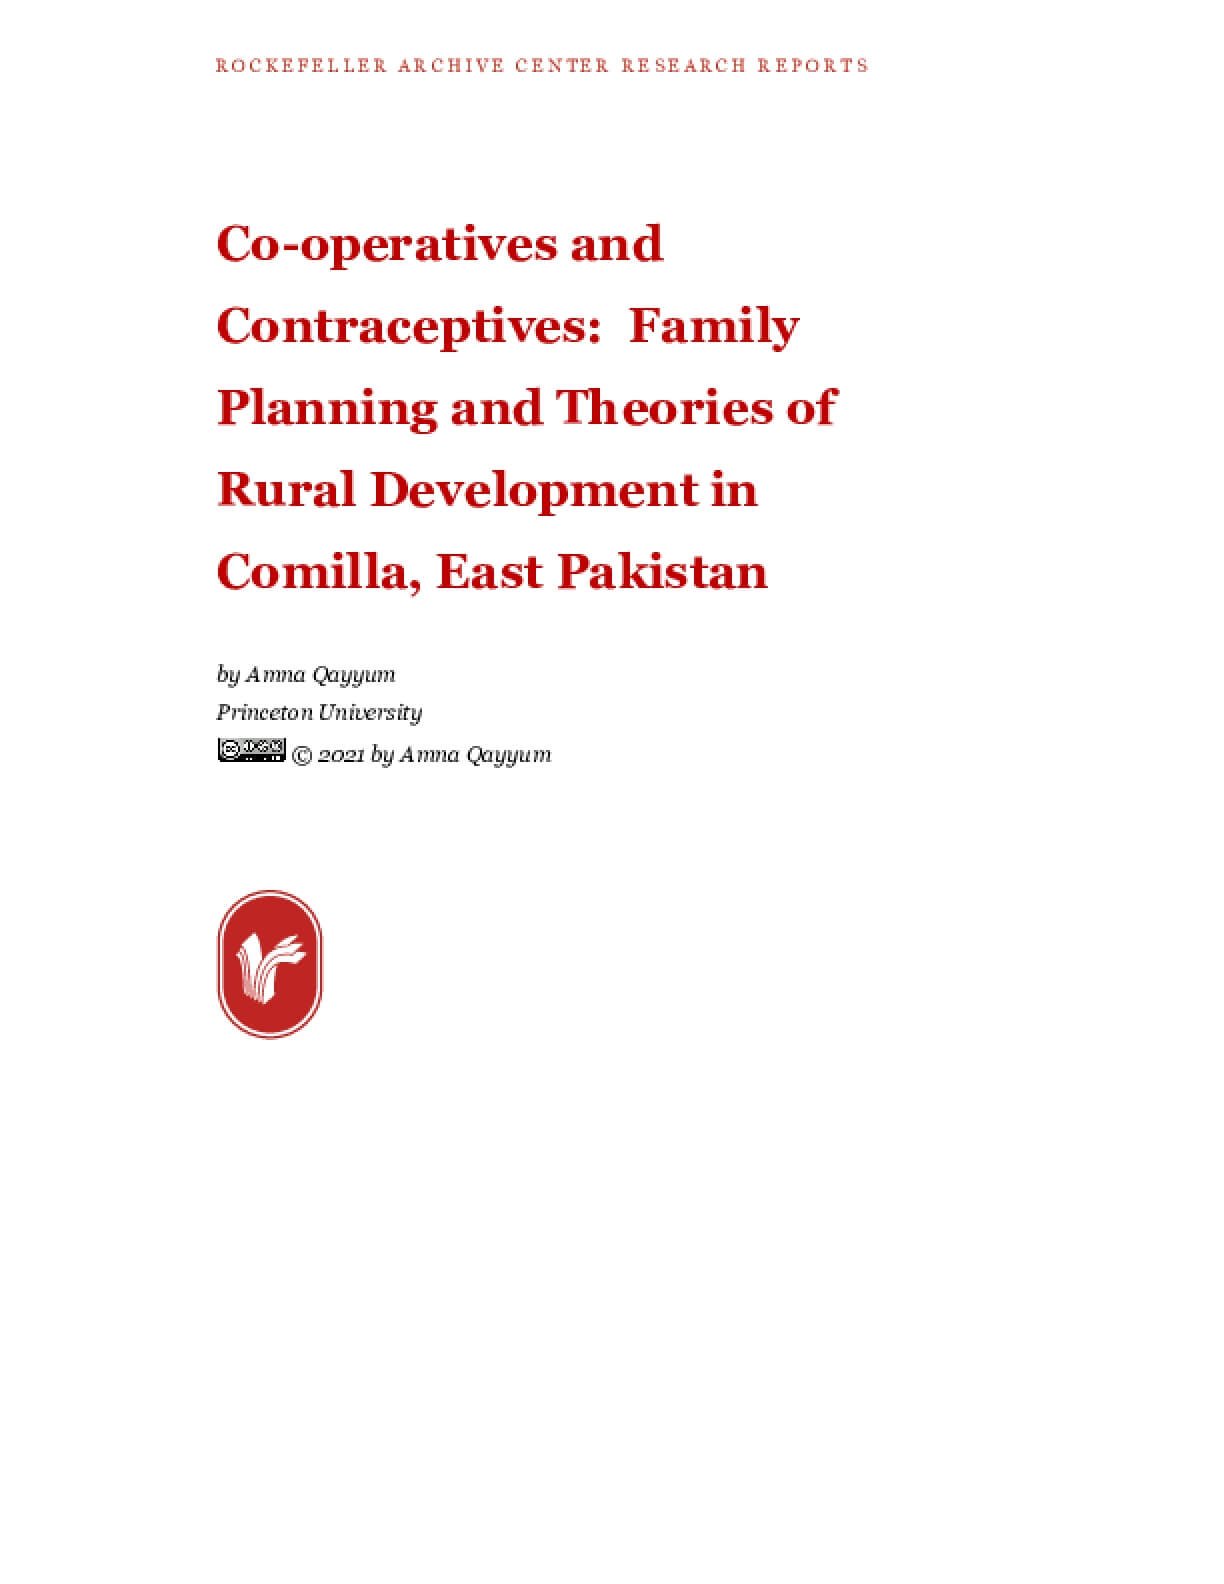 Co-operatives and Contraceptives:  Family Planning and Theories of Rural Development in Comilla, East Pakistan